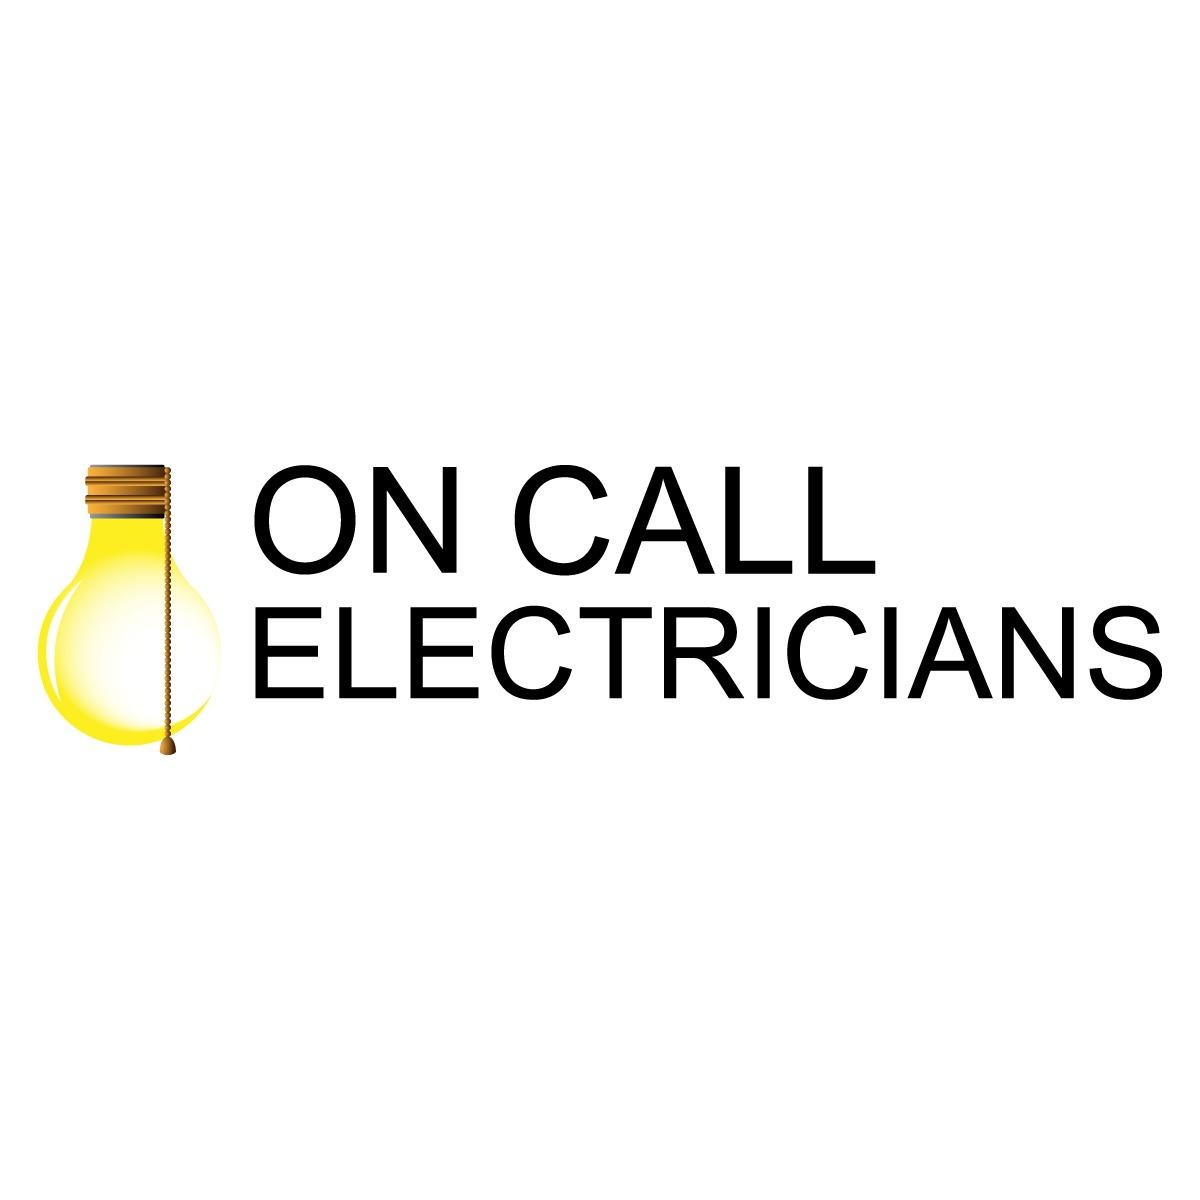 On Call Electricians